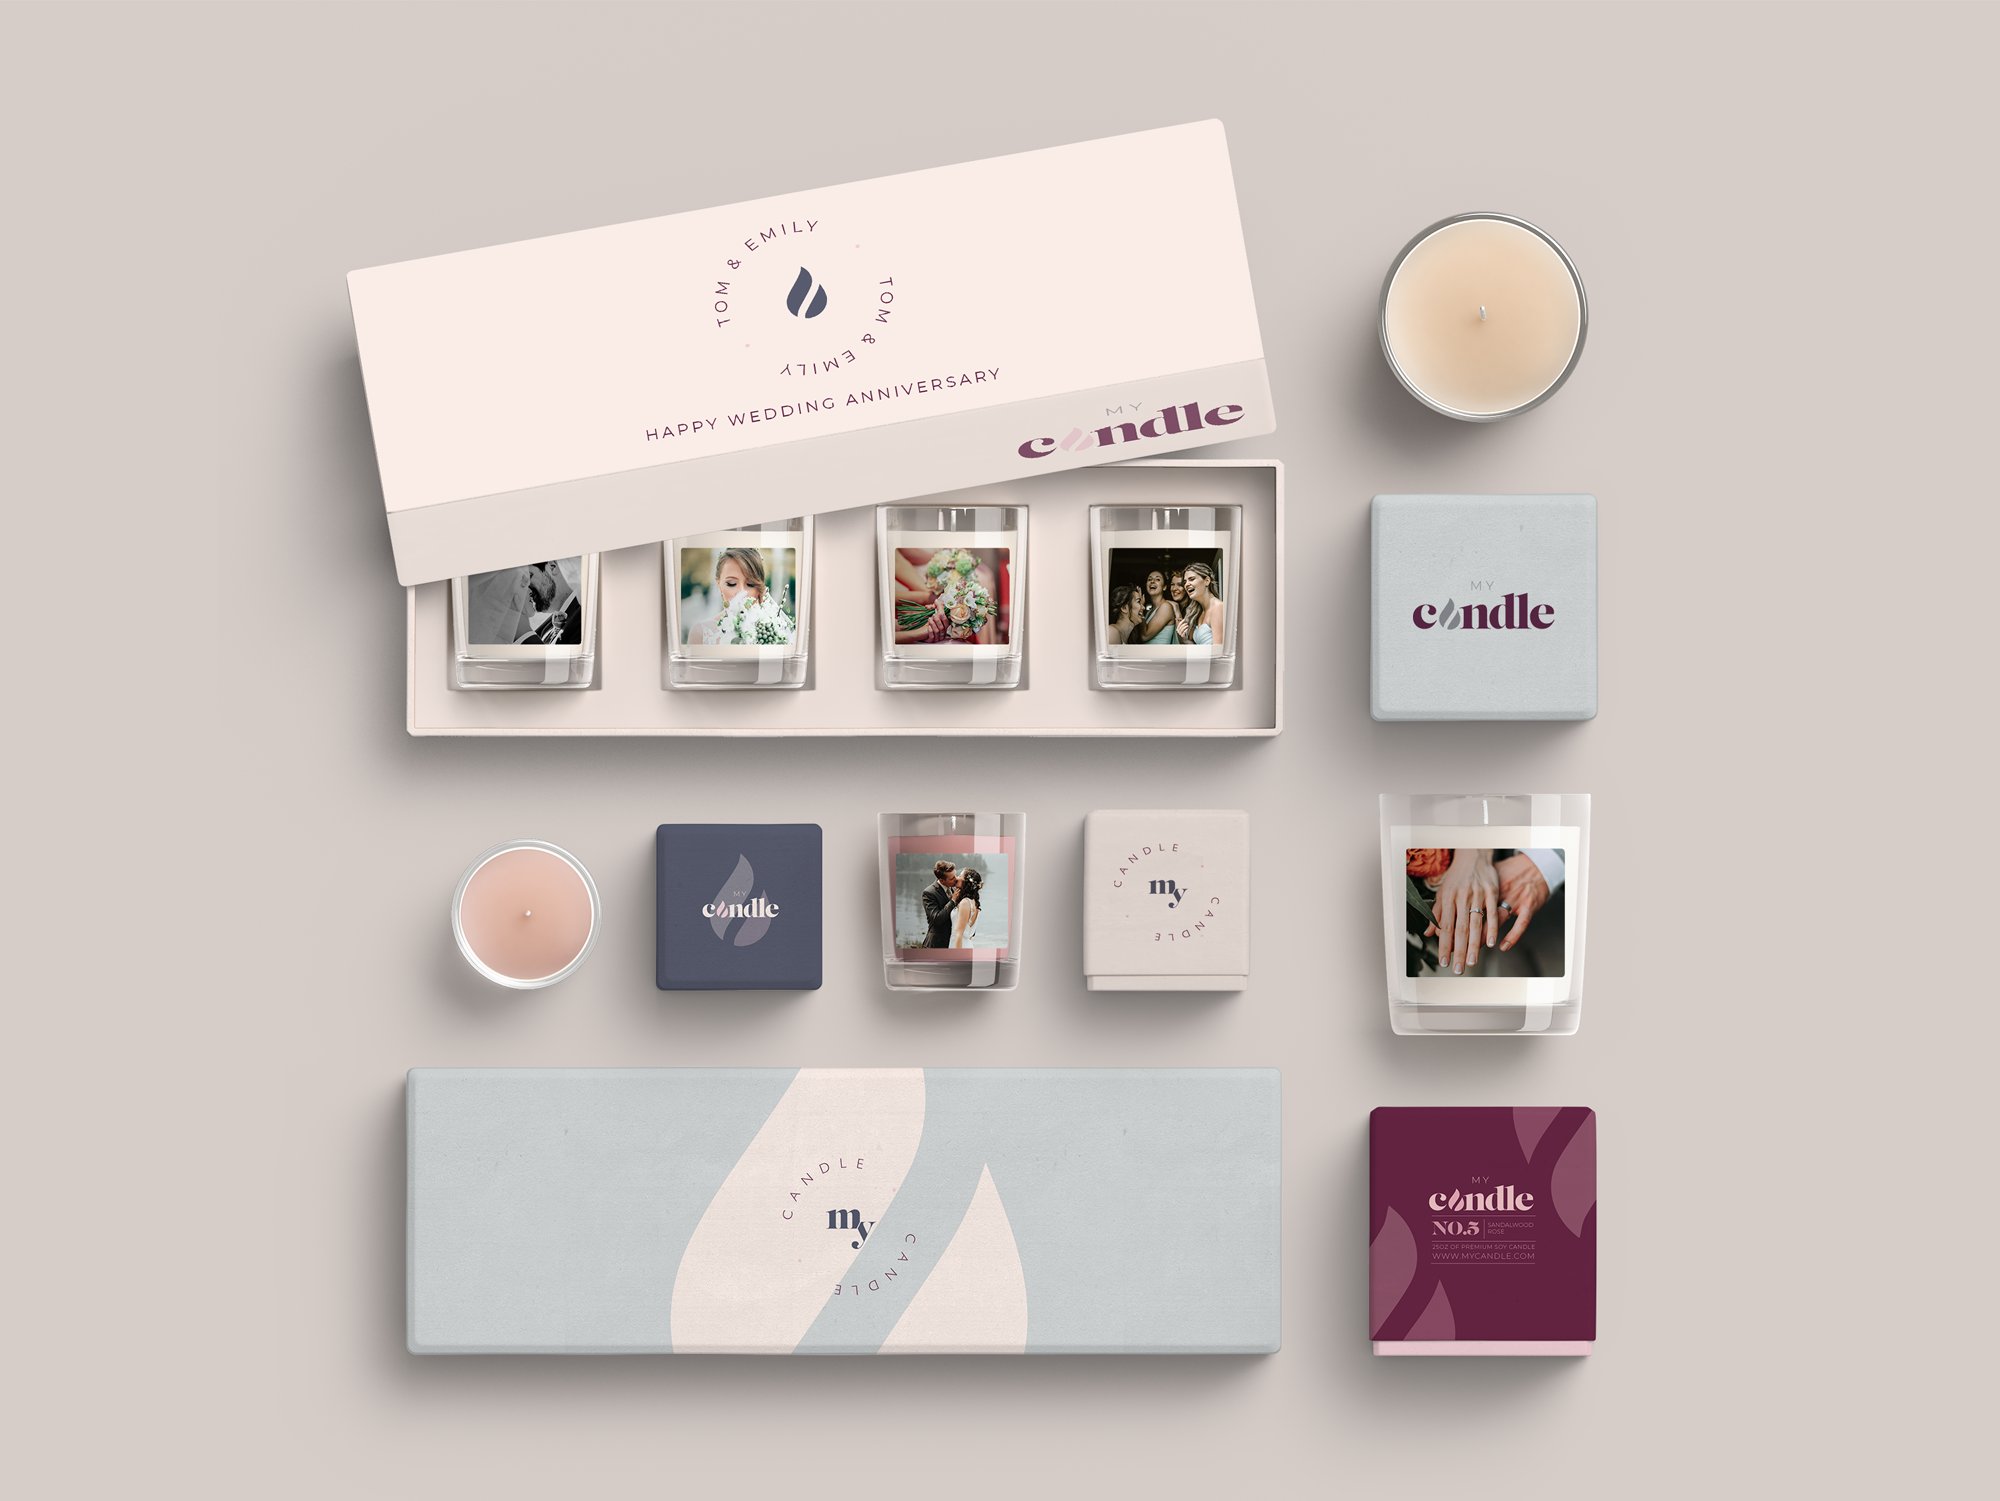 mycandle-packaging-concepts-london-design-agency